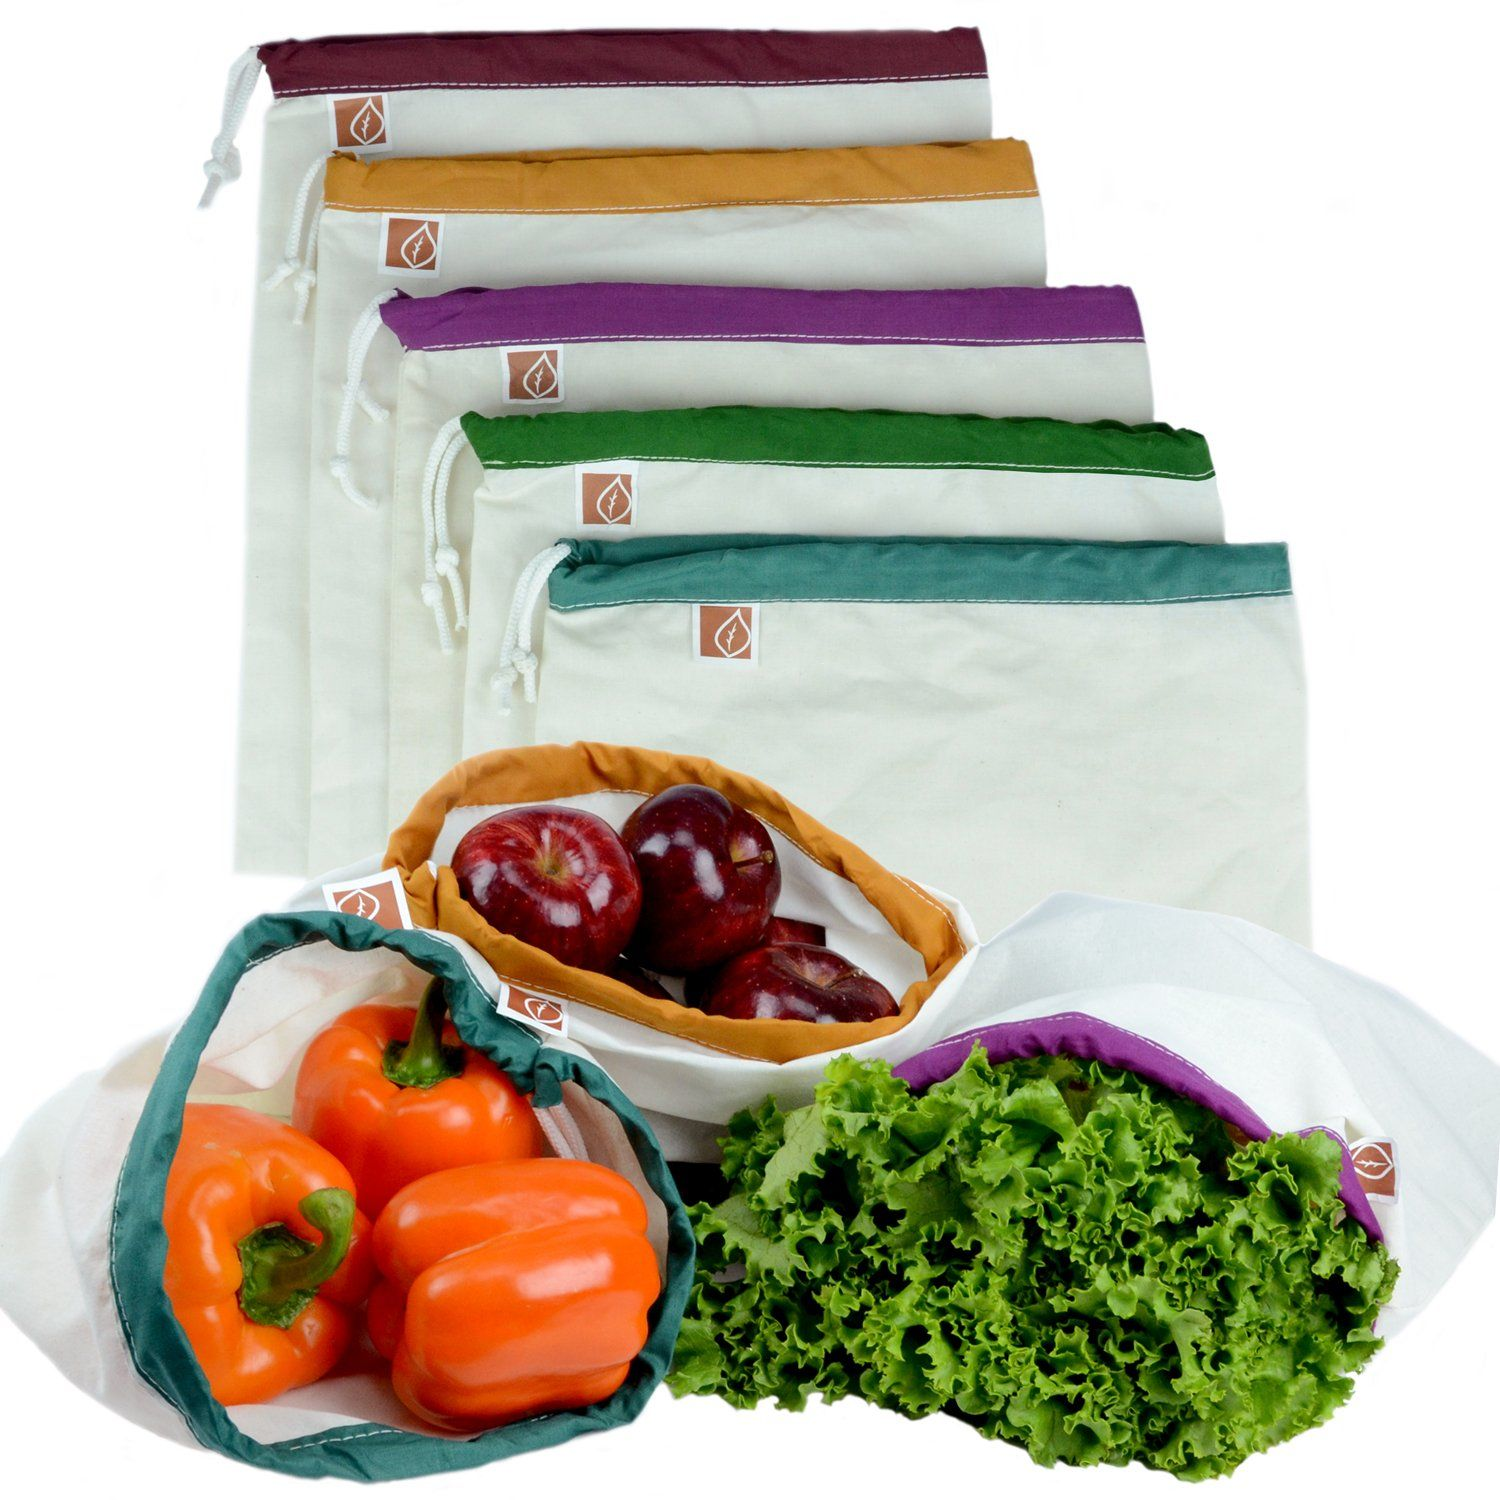 """Amazon.com: Eco Friendly Washable and Reusable Produce Bags - Soft Premium Lightweight Cotton Muslin Canvas Large - 12"""" X 14"""" - Set of 5 (Red, Yellow, Green, Blue, Purple) 